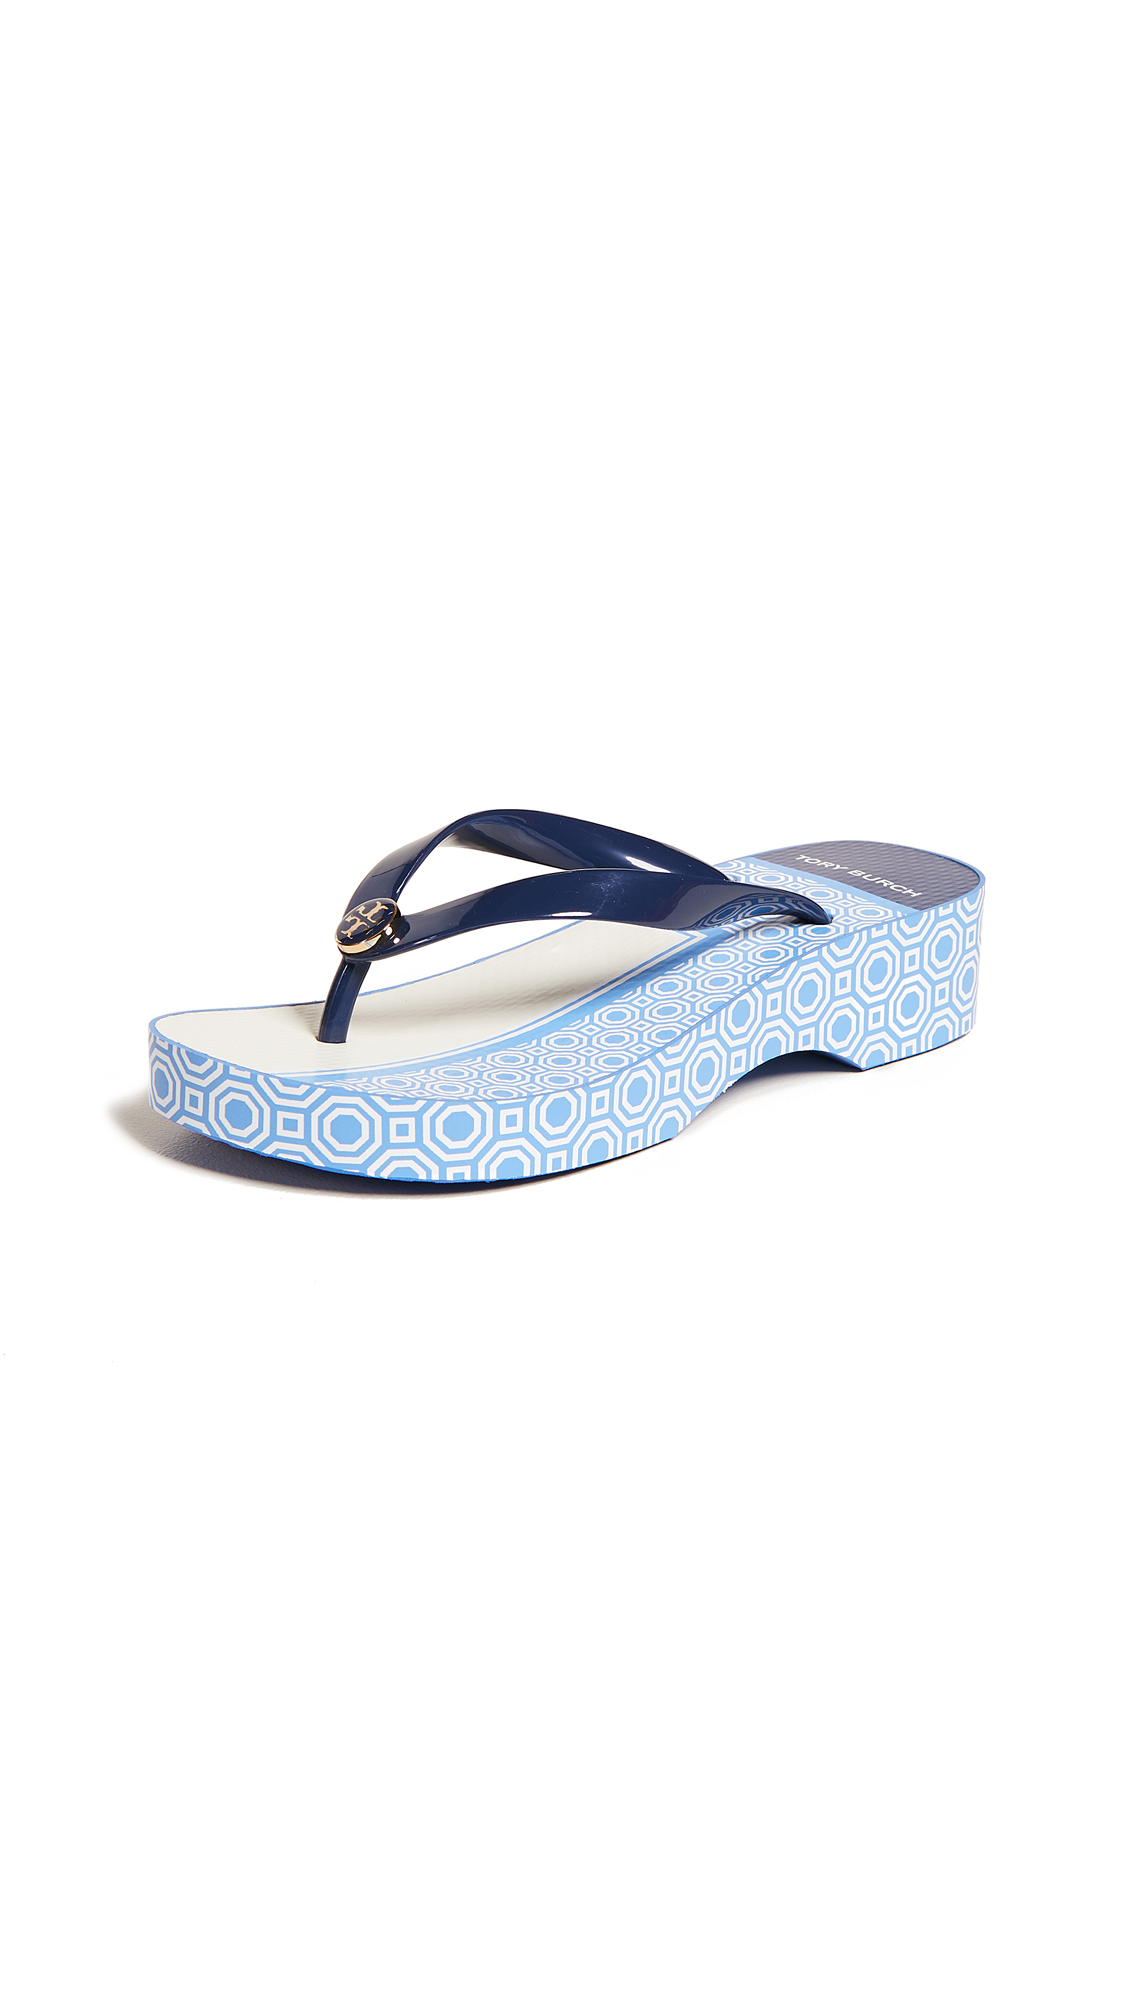 Tory Burch Cutout Wedge Flip Flops - Navy/Sunny Blue Octagon